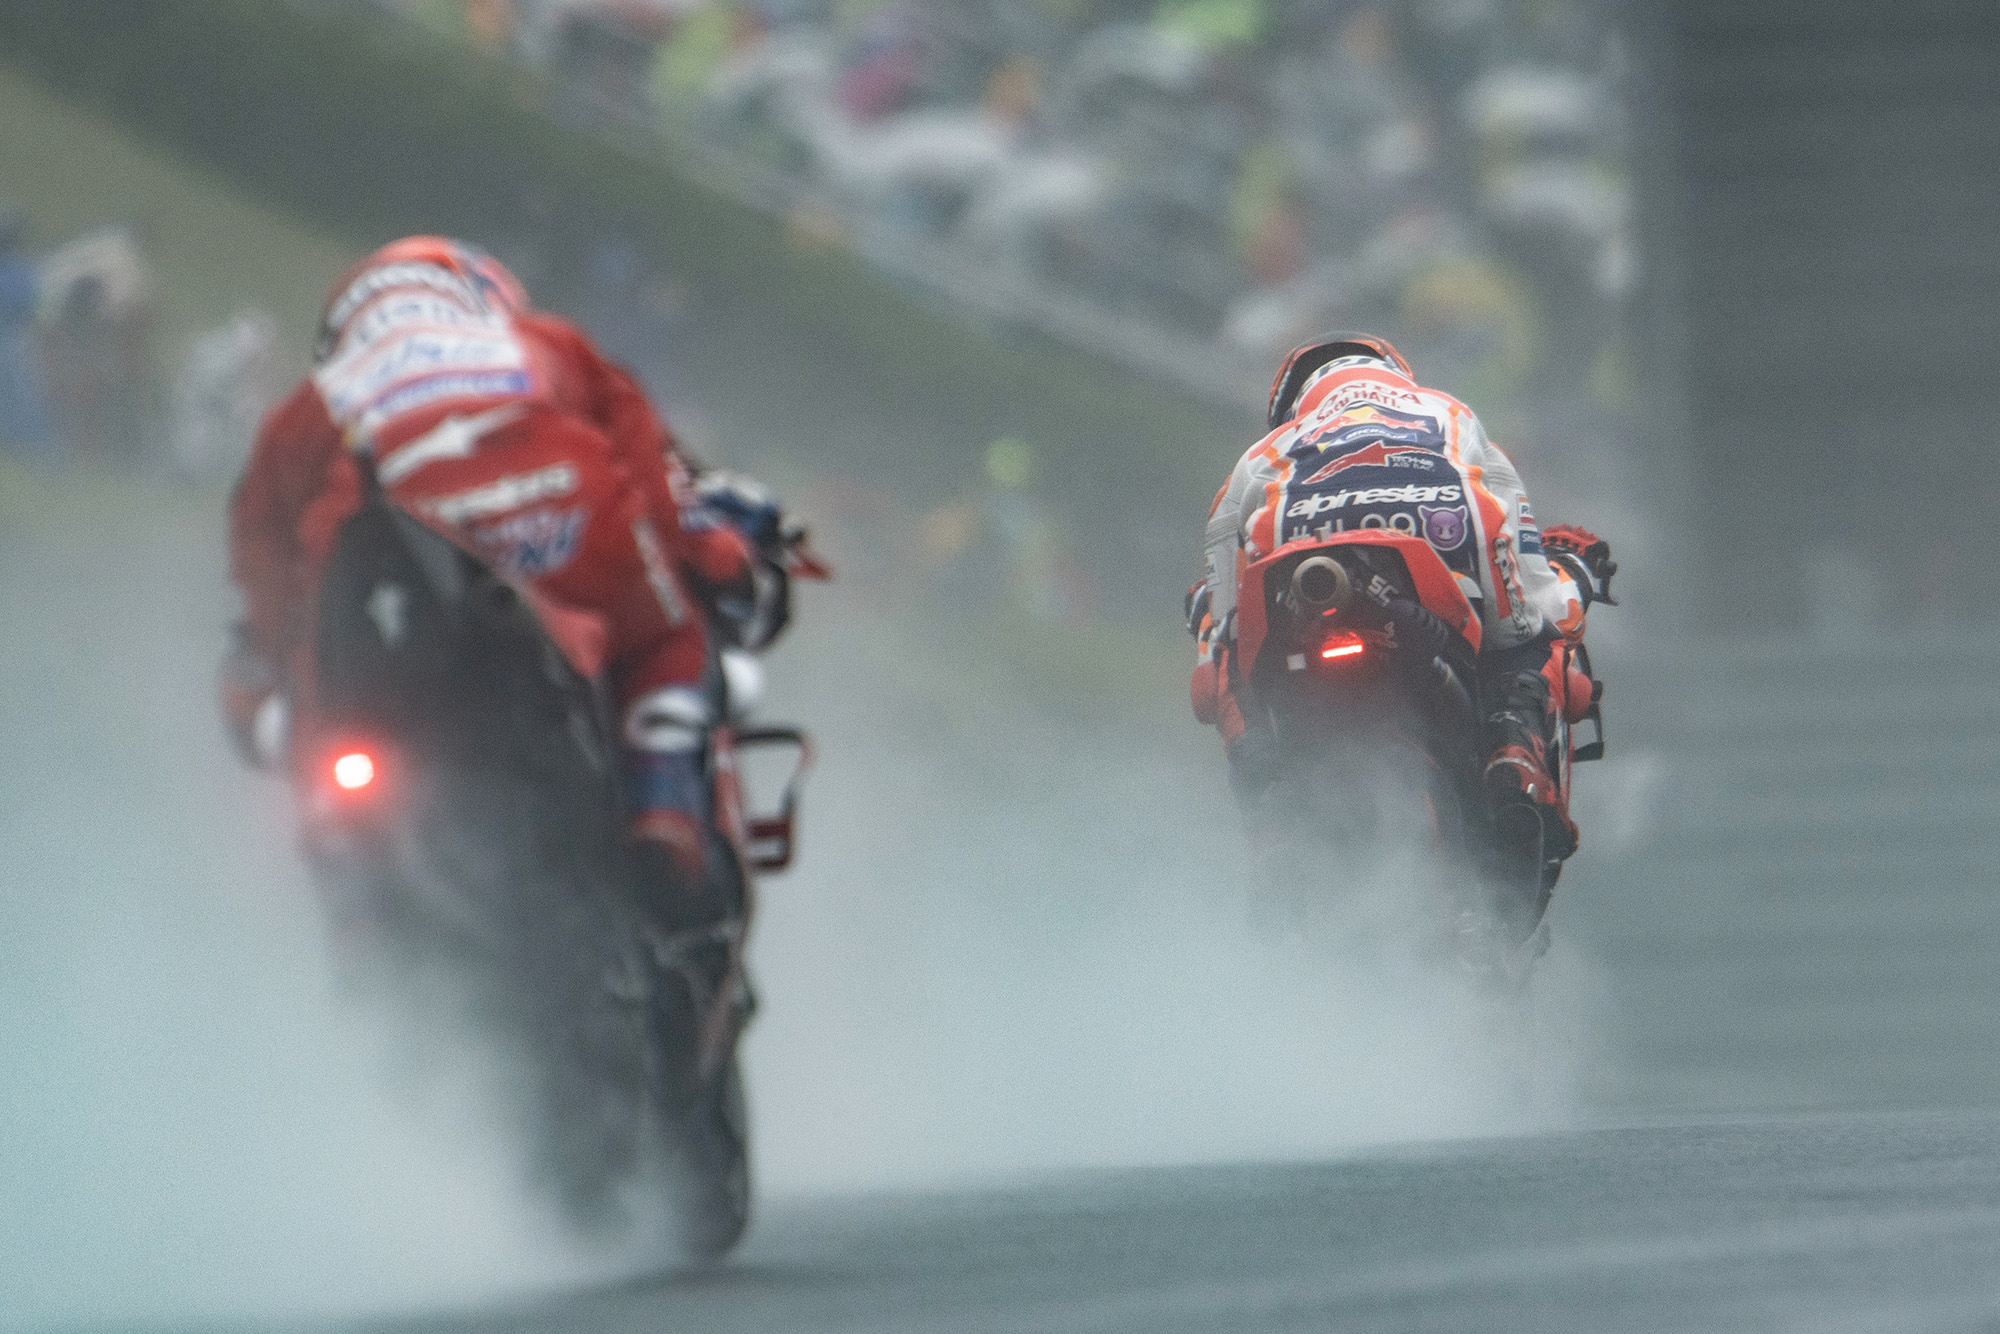 Spray during wet practice at the 2019 MotoGP Grand Prix of Japan